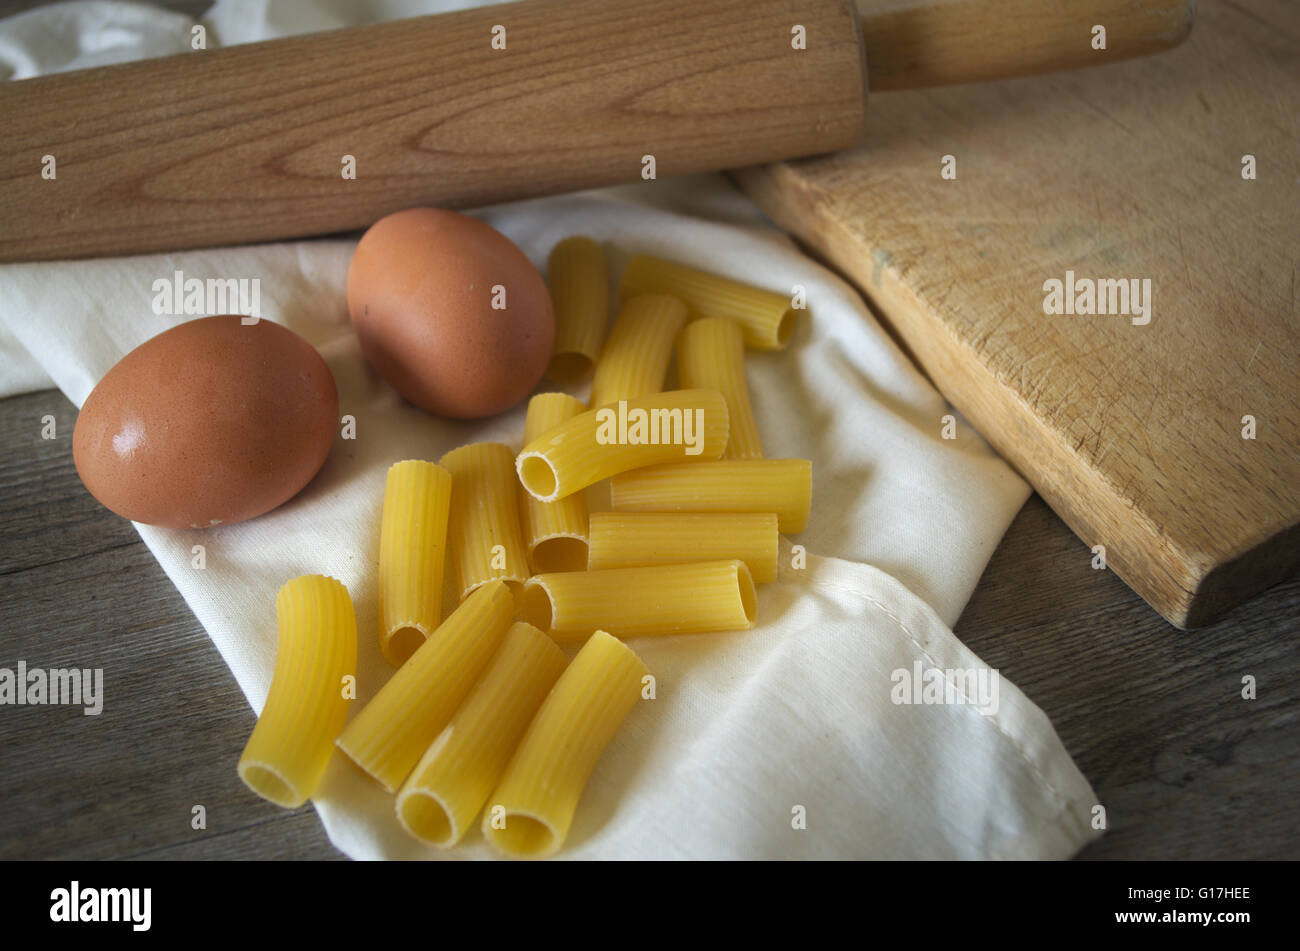 Italian food. Pasta (rigatoni) with eggs on wooden table in low light Stock Photo